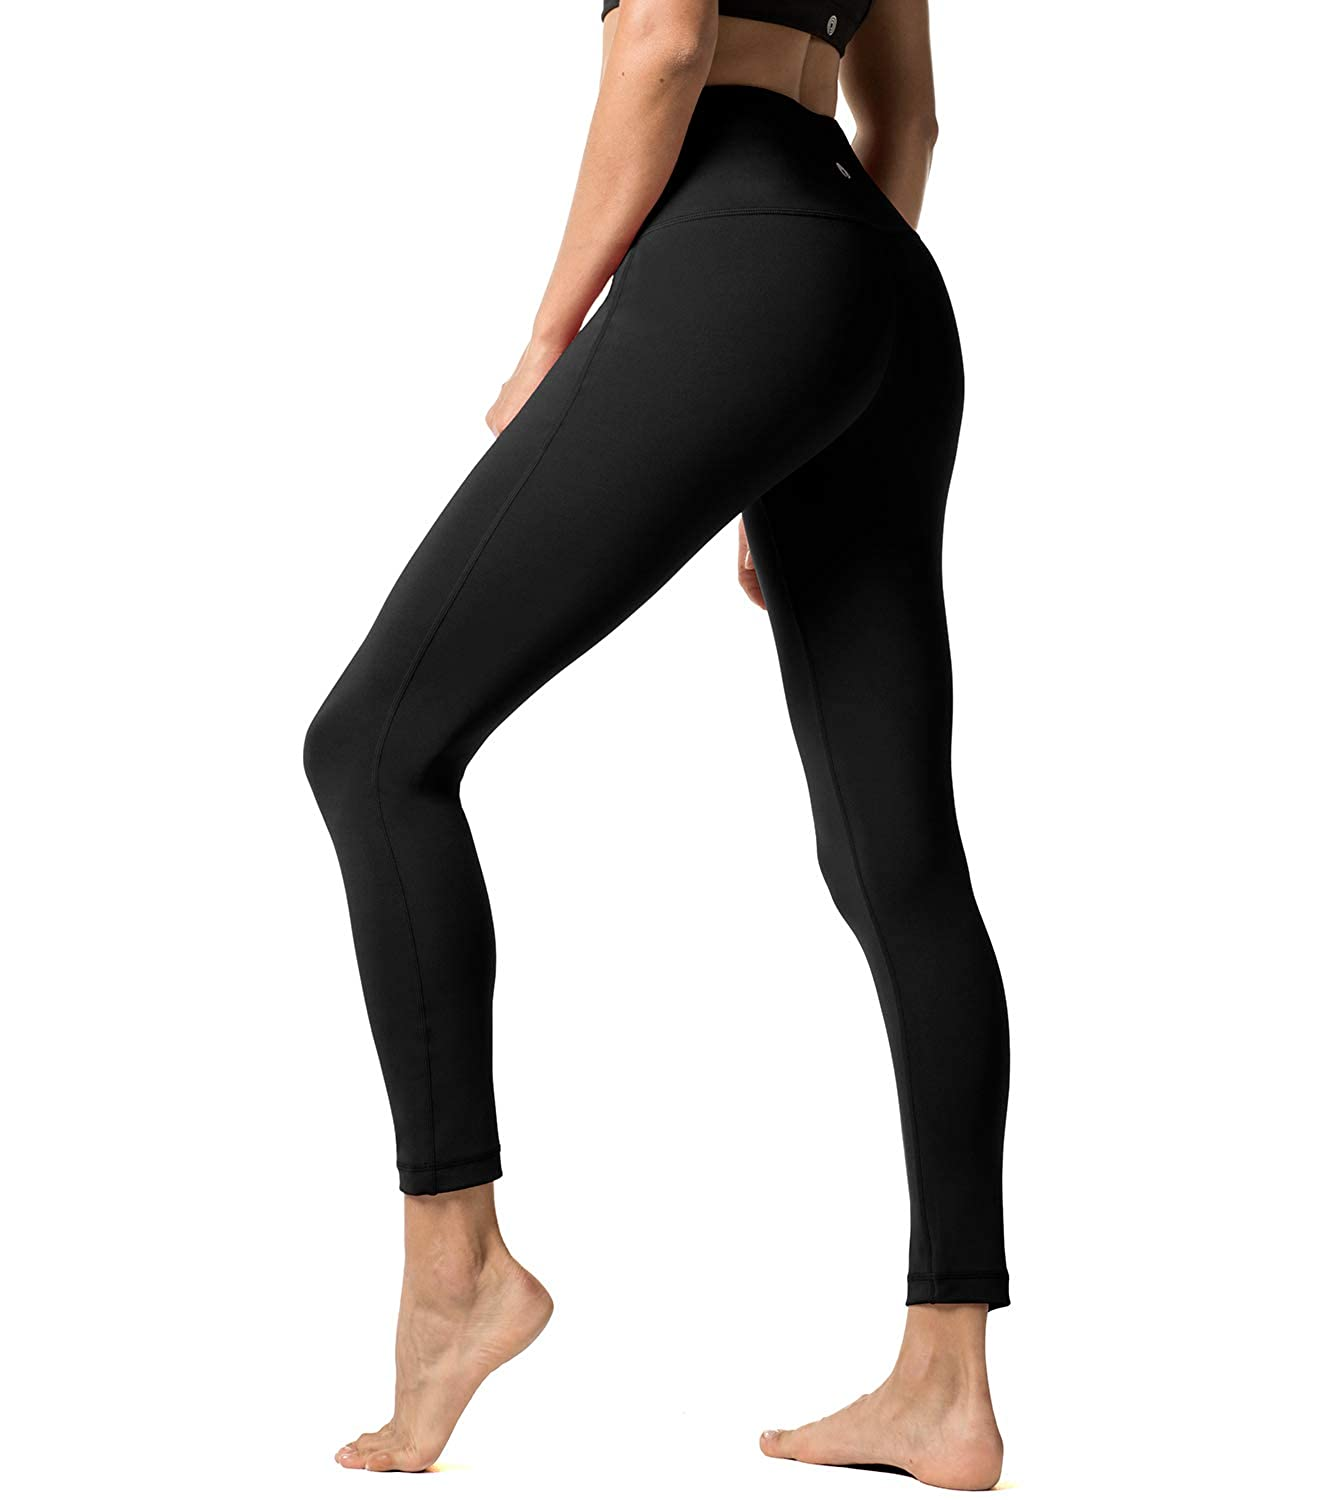 ae21ace3226e5 Lapasa High Waist Leggings Yoga Pants Women's Running Tights Sport Leggings,  Plus Size, With Hidden Pocket L01, L32: Amazon.co.uk: Clothing